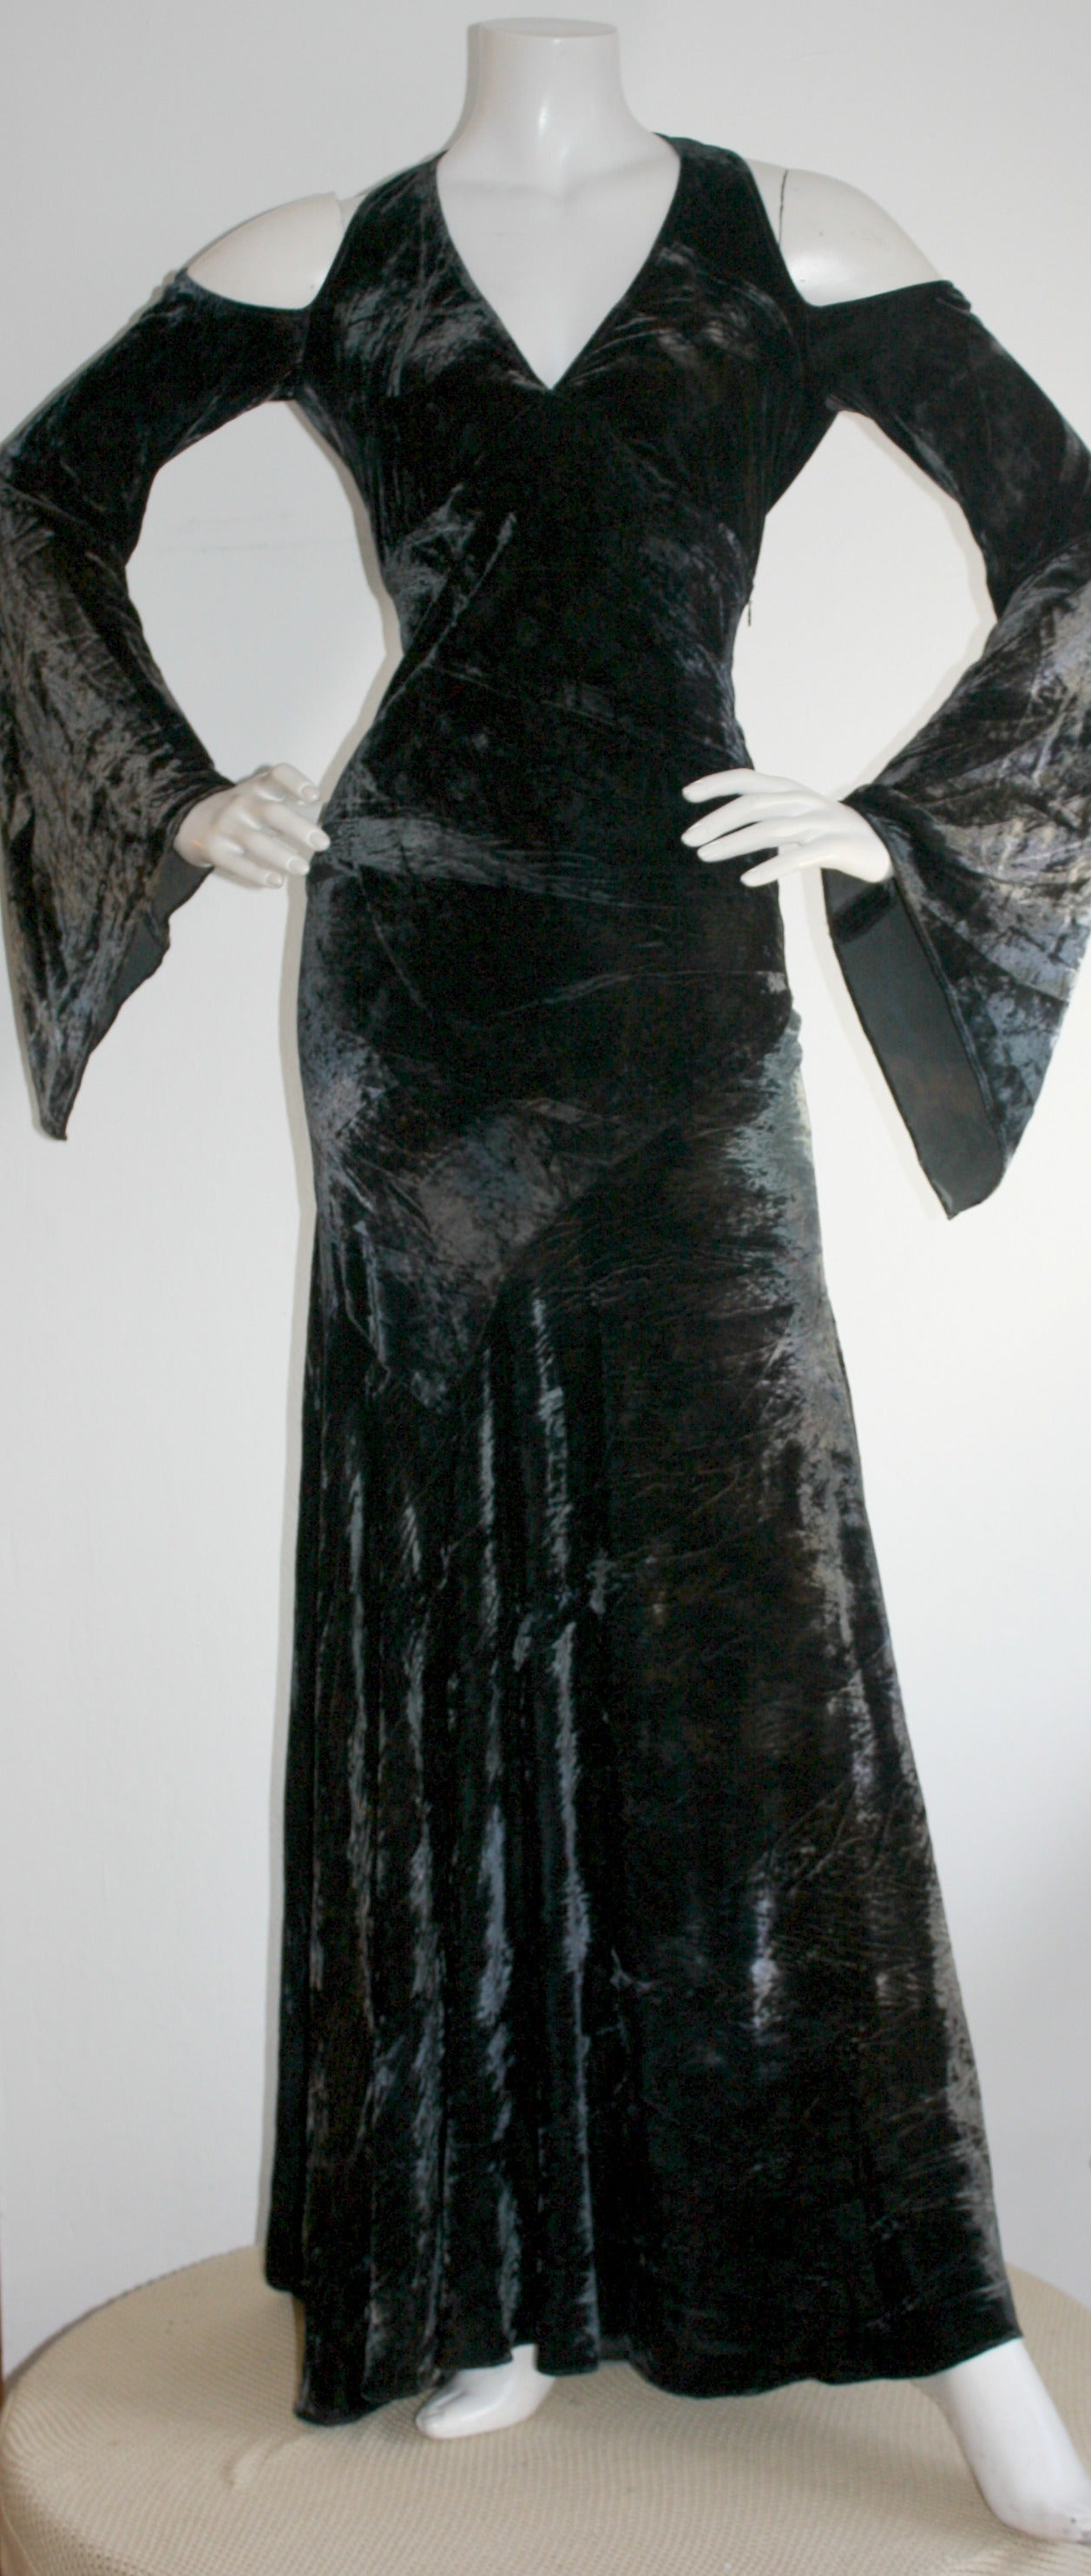 Exceptional vintage Donna Karan crushed velvet gown! Features dark green and blue ombré effect, on incredibly soft silk crushed velvet. Sexy open back, with three hook and eyes at neck. Wonderful bell sleeves, with cut-outs at shoulders. A truly